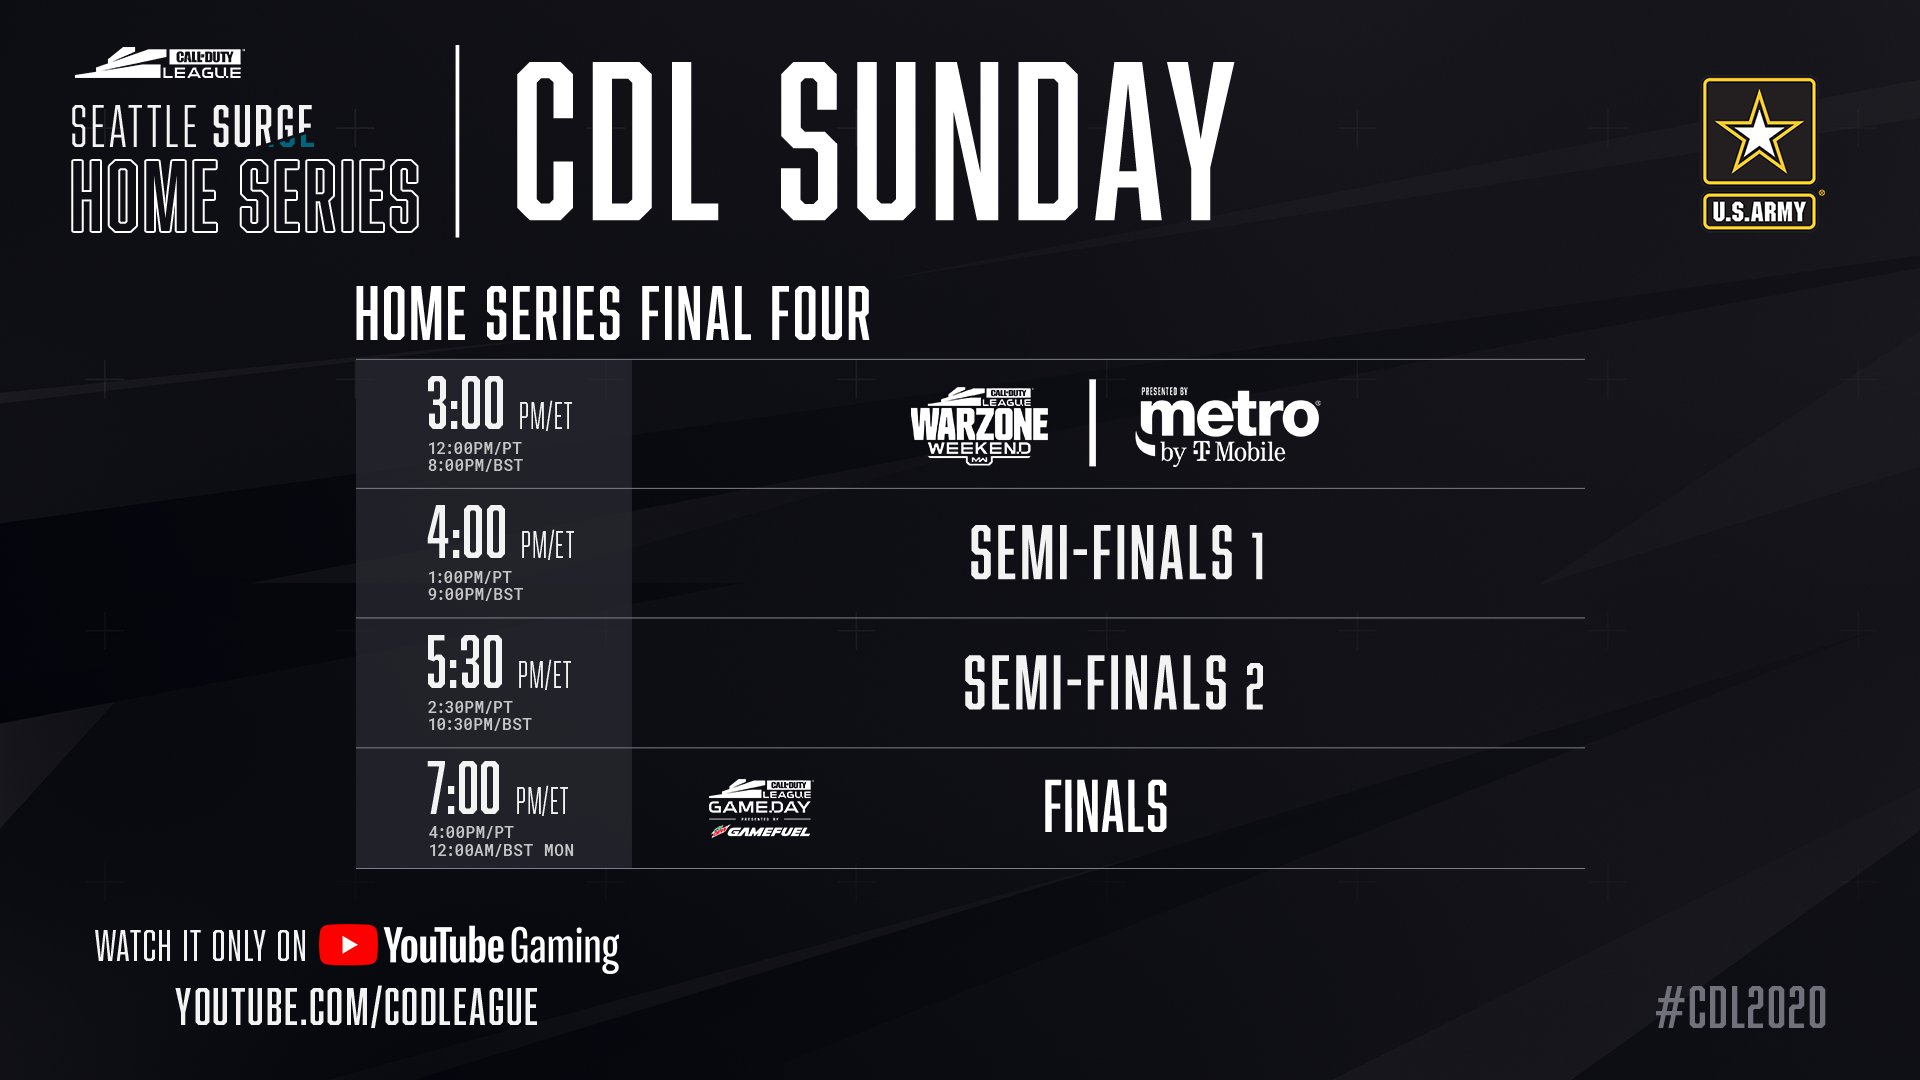 Call of Duty Seattle Surge Home Series Sunday Schedule 2020